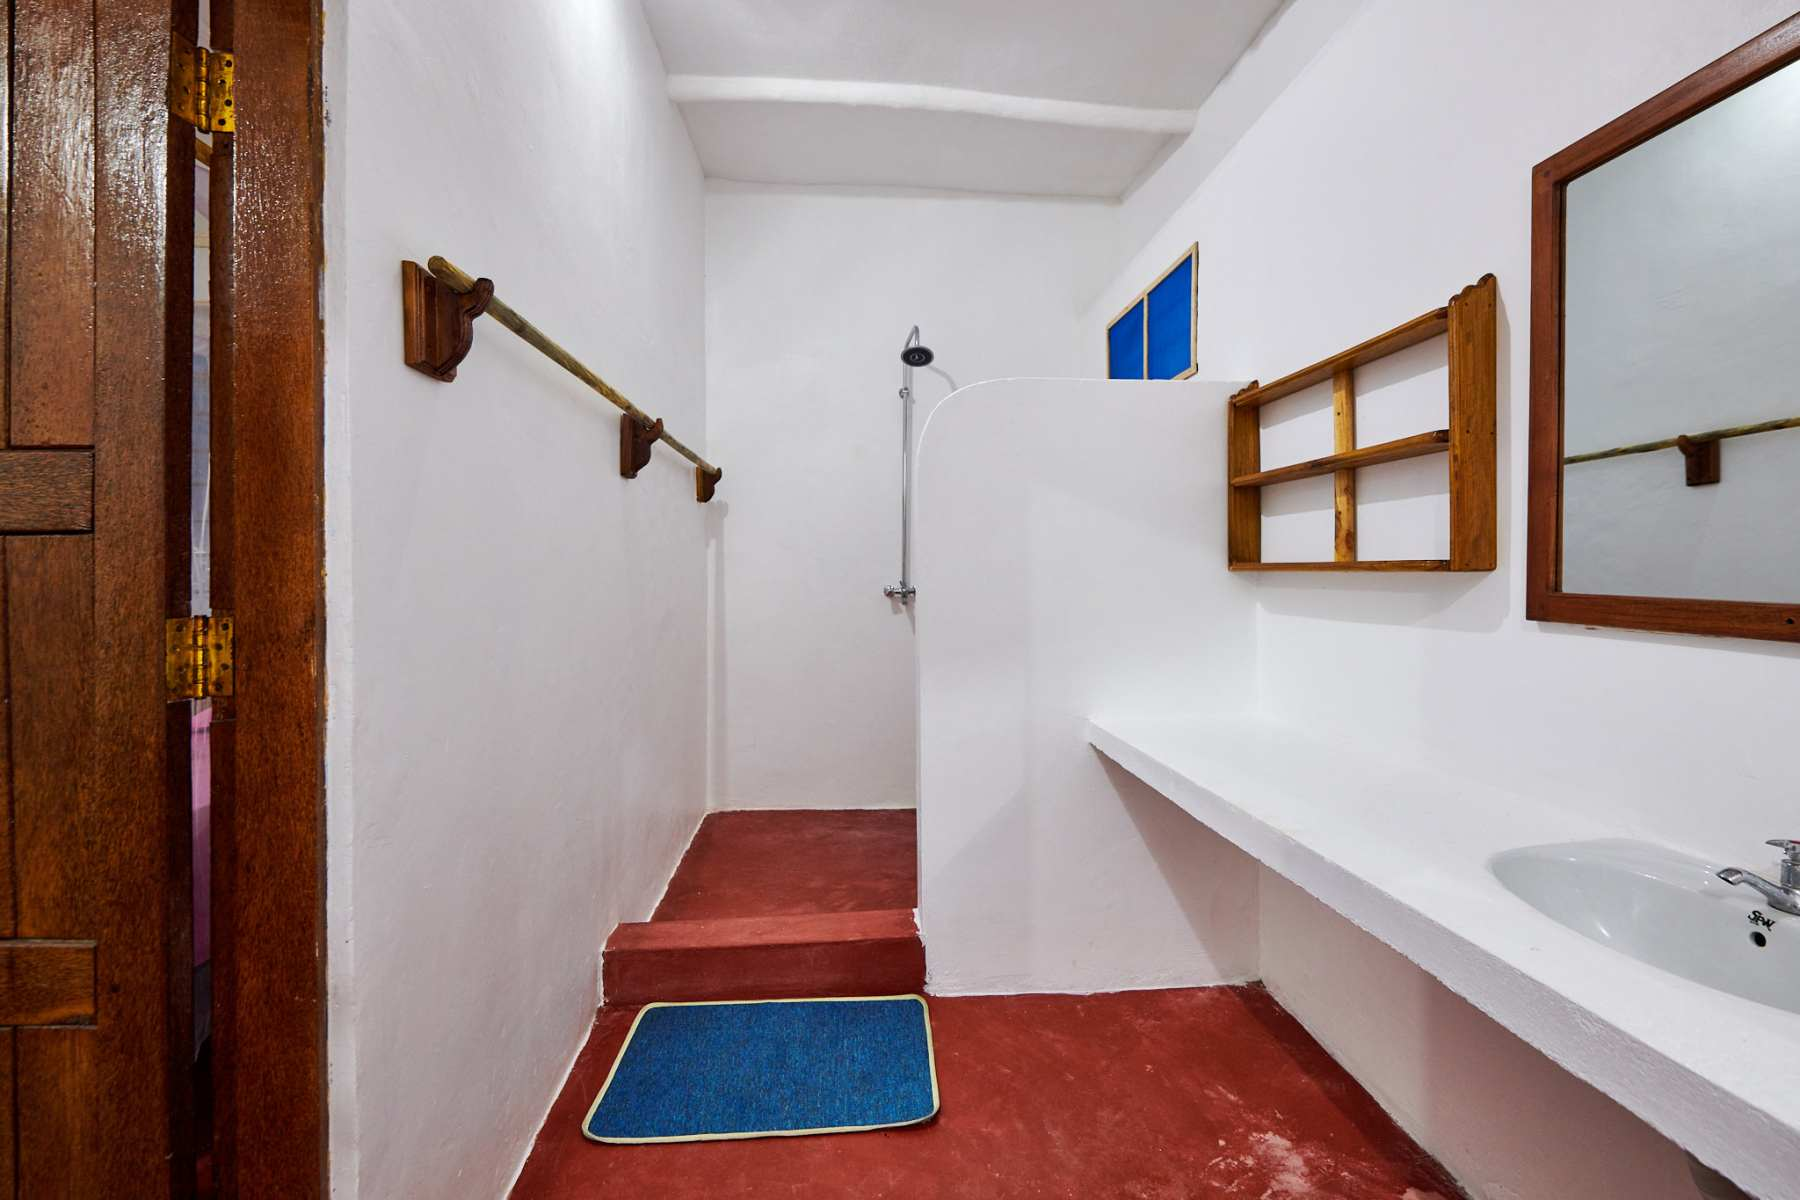 Double room two people is 50 usd .Single room one person 30 usd .Twin room 50 usd .Triple room three people 75 usd .